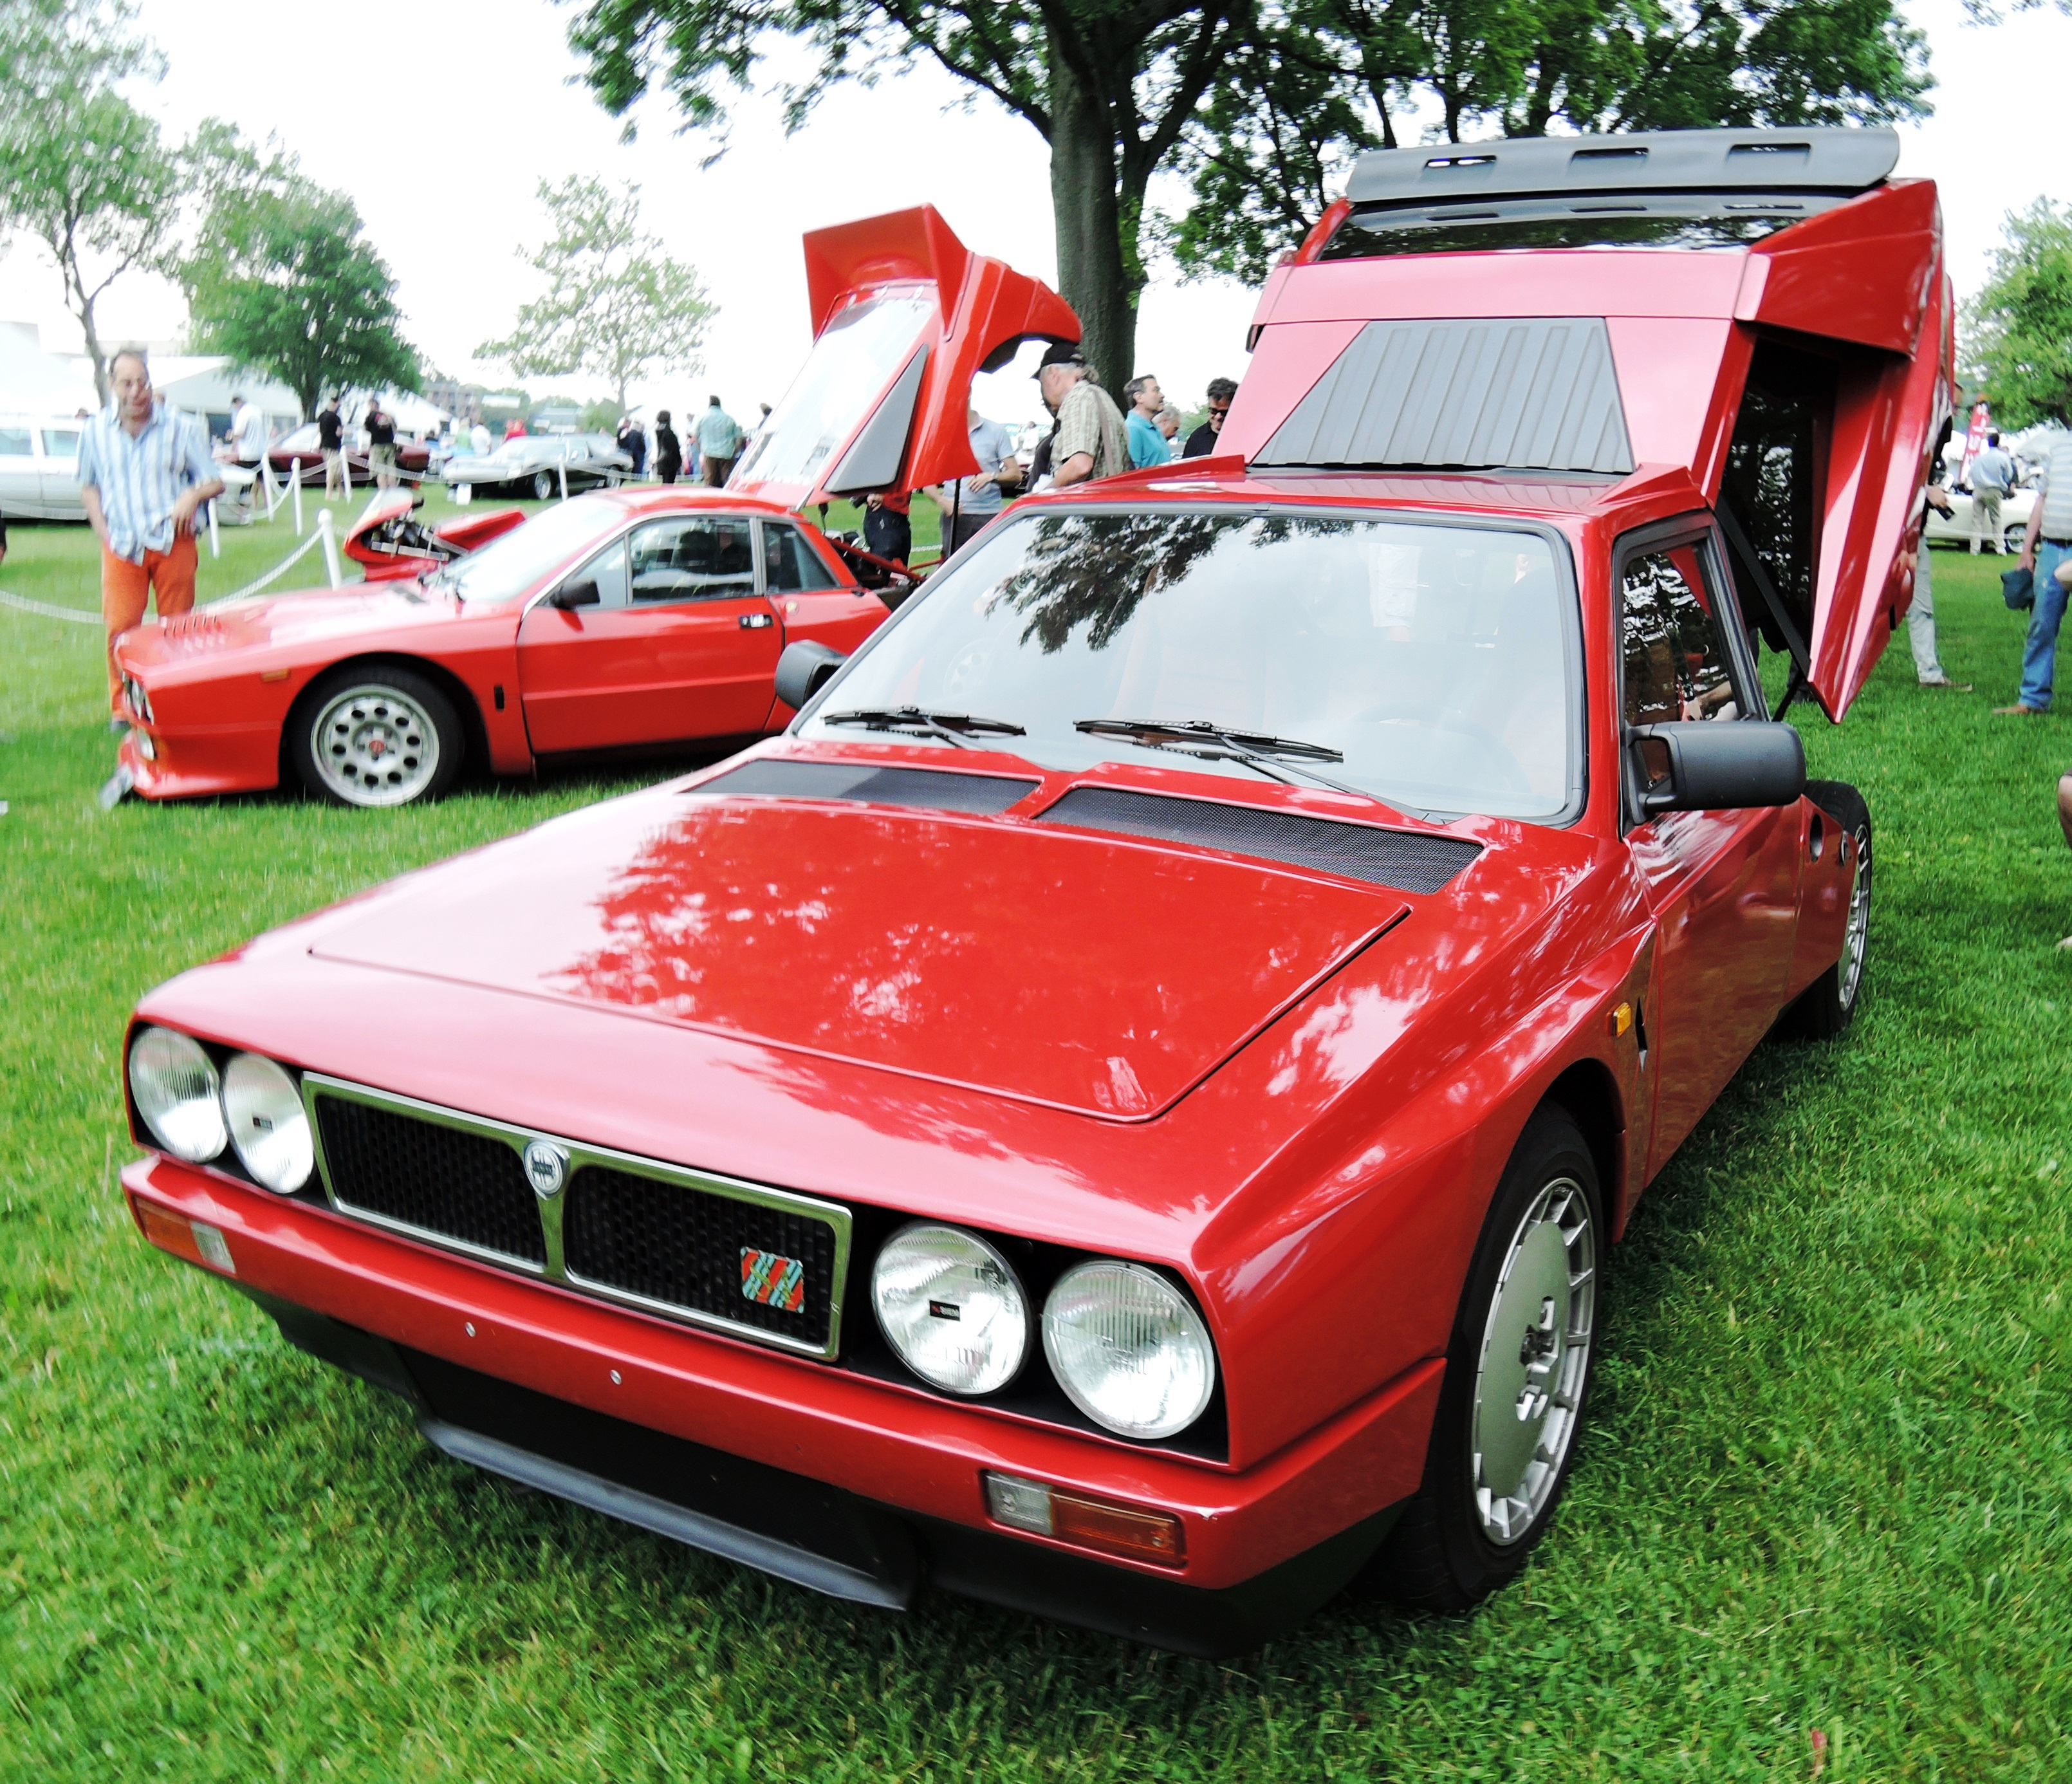 red 1986 Lancia Delta S4 Coupe - Greenwich concours d'elegance